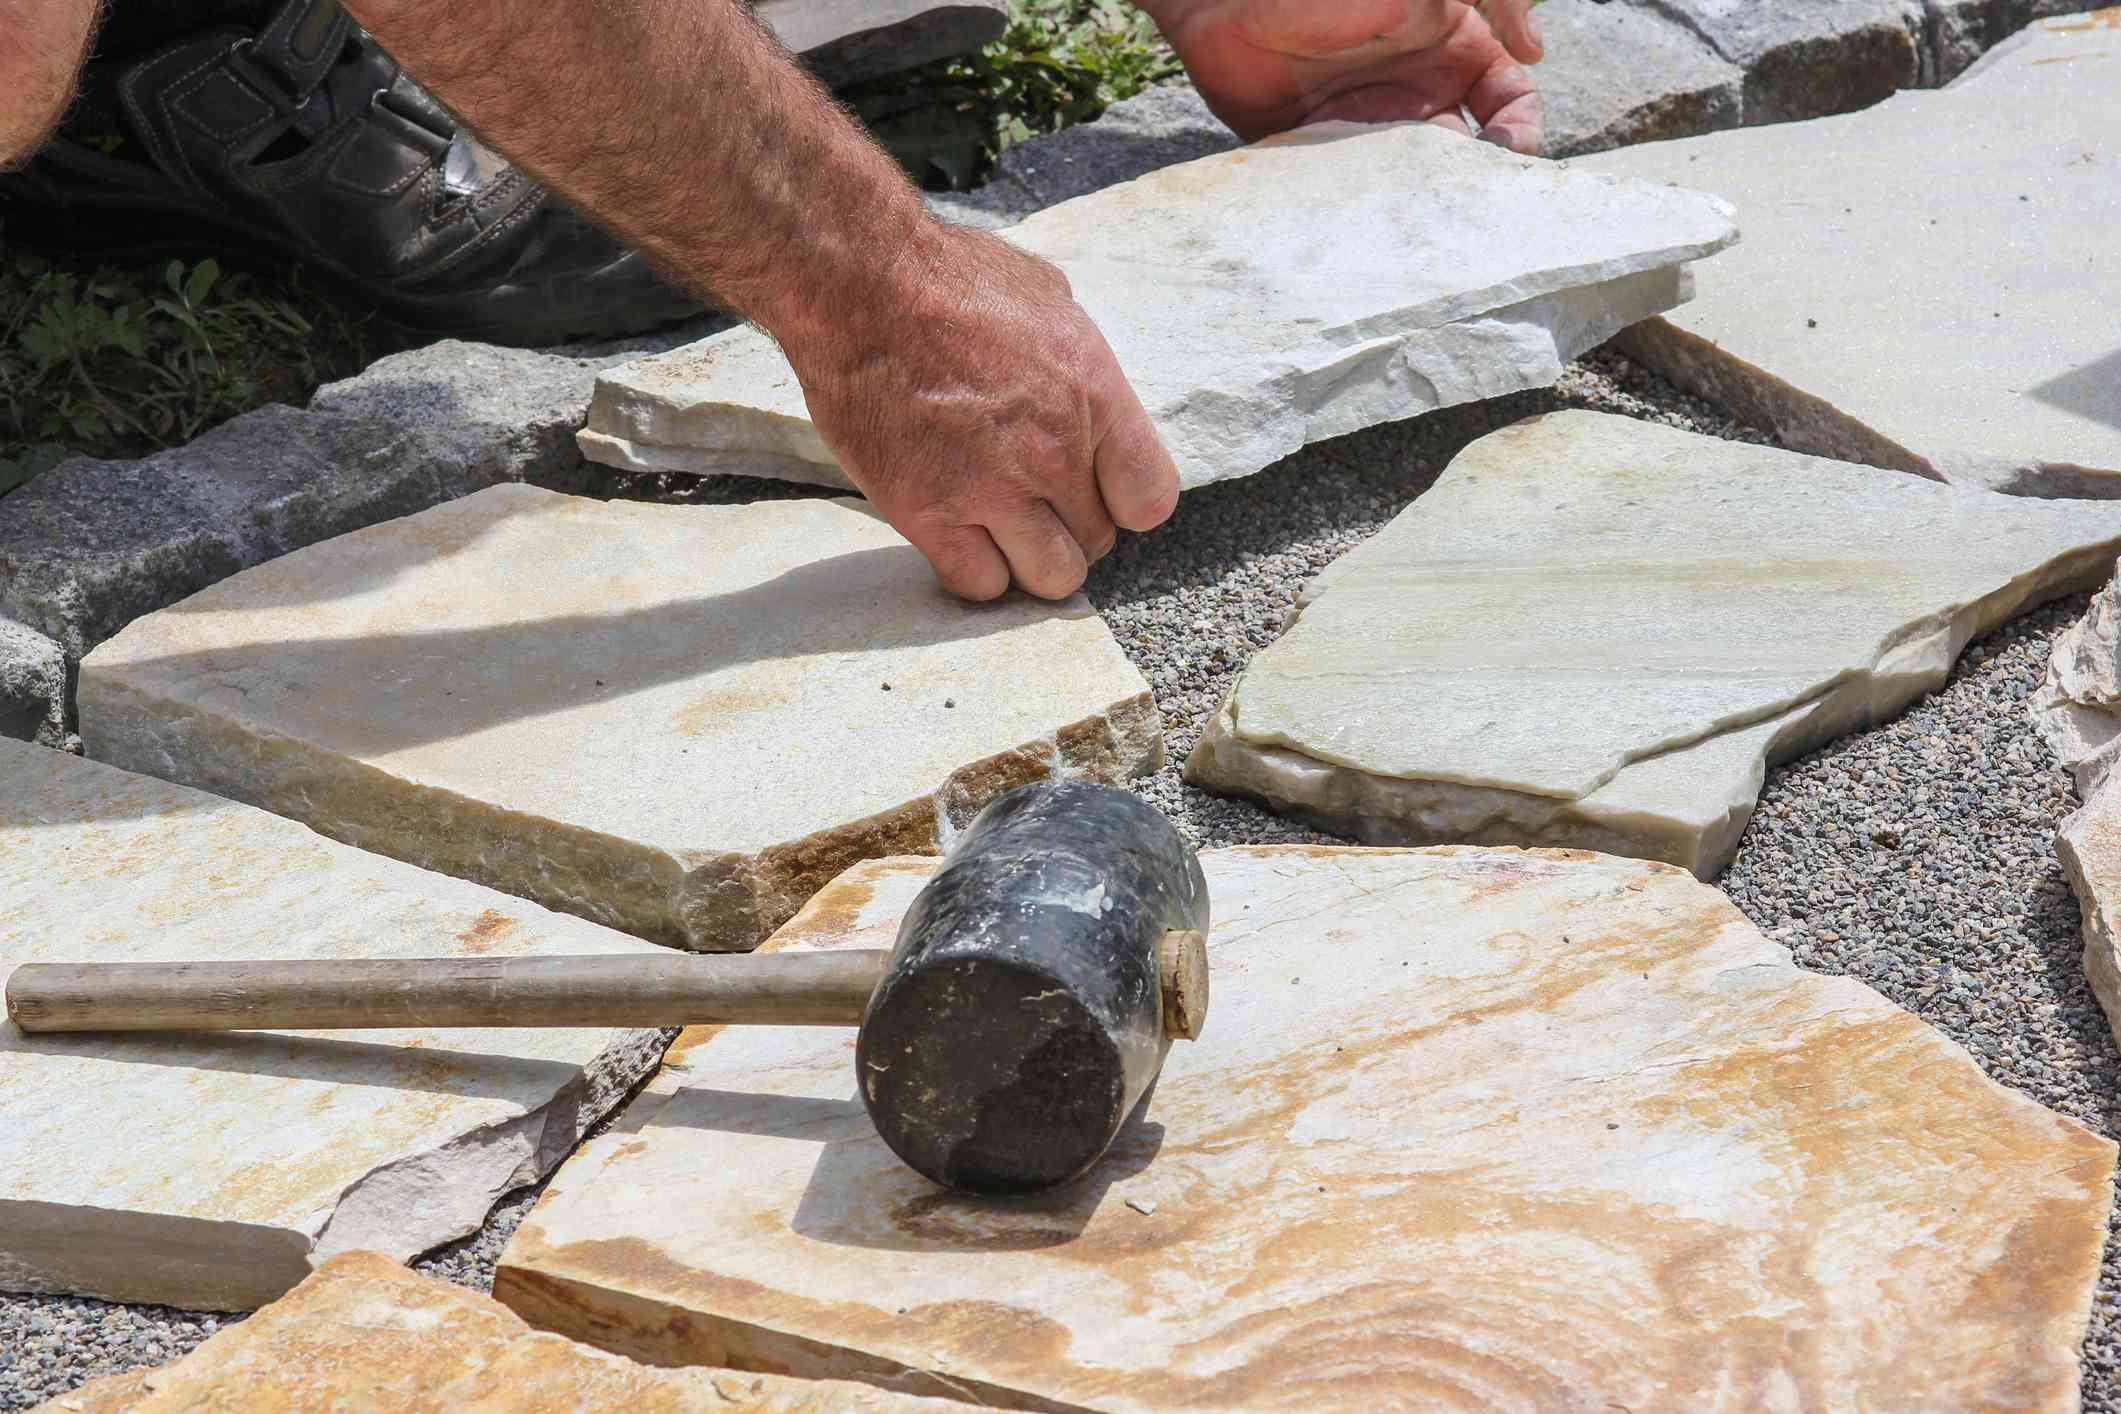 Laying marble plates